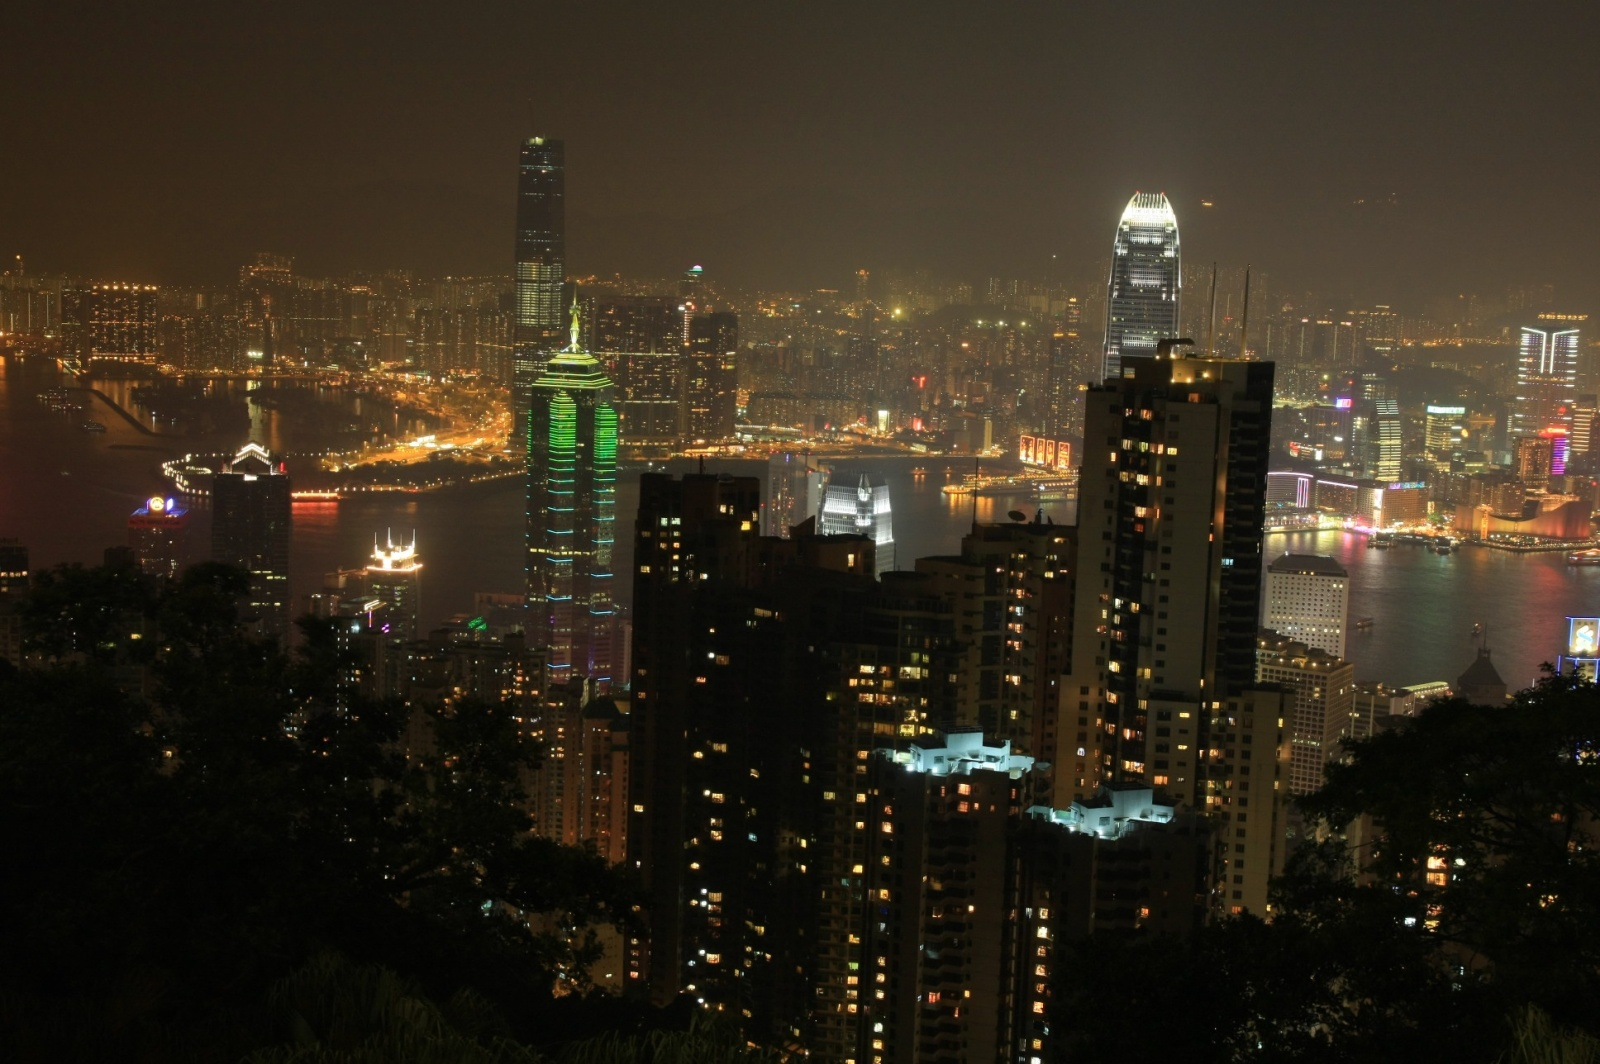 Victoria Peak view by night